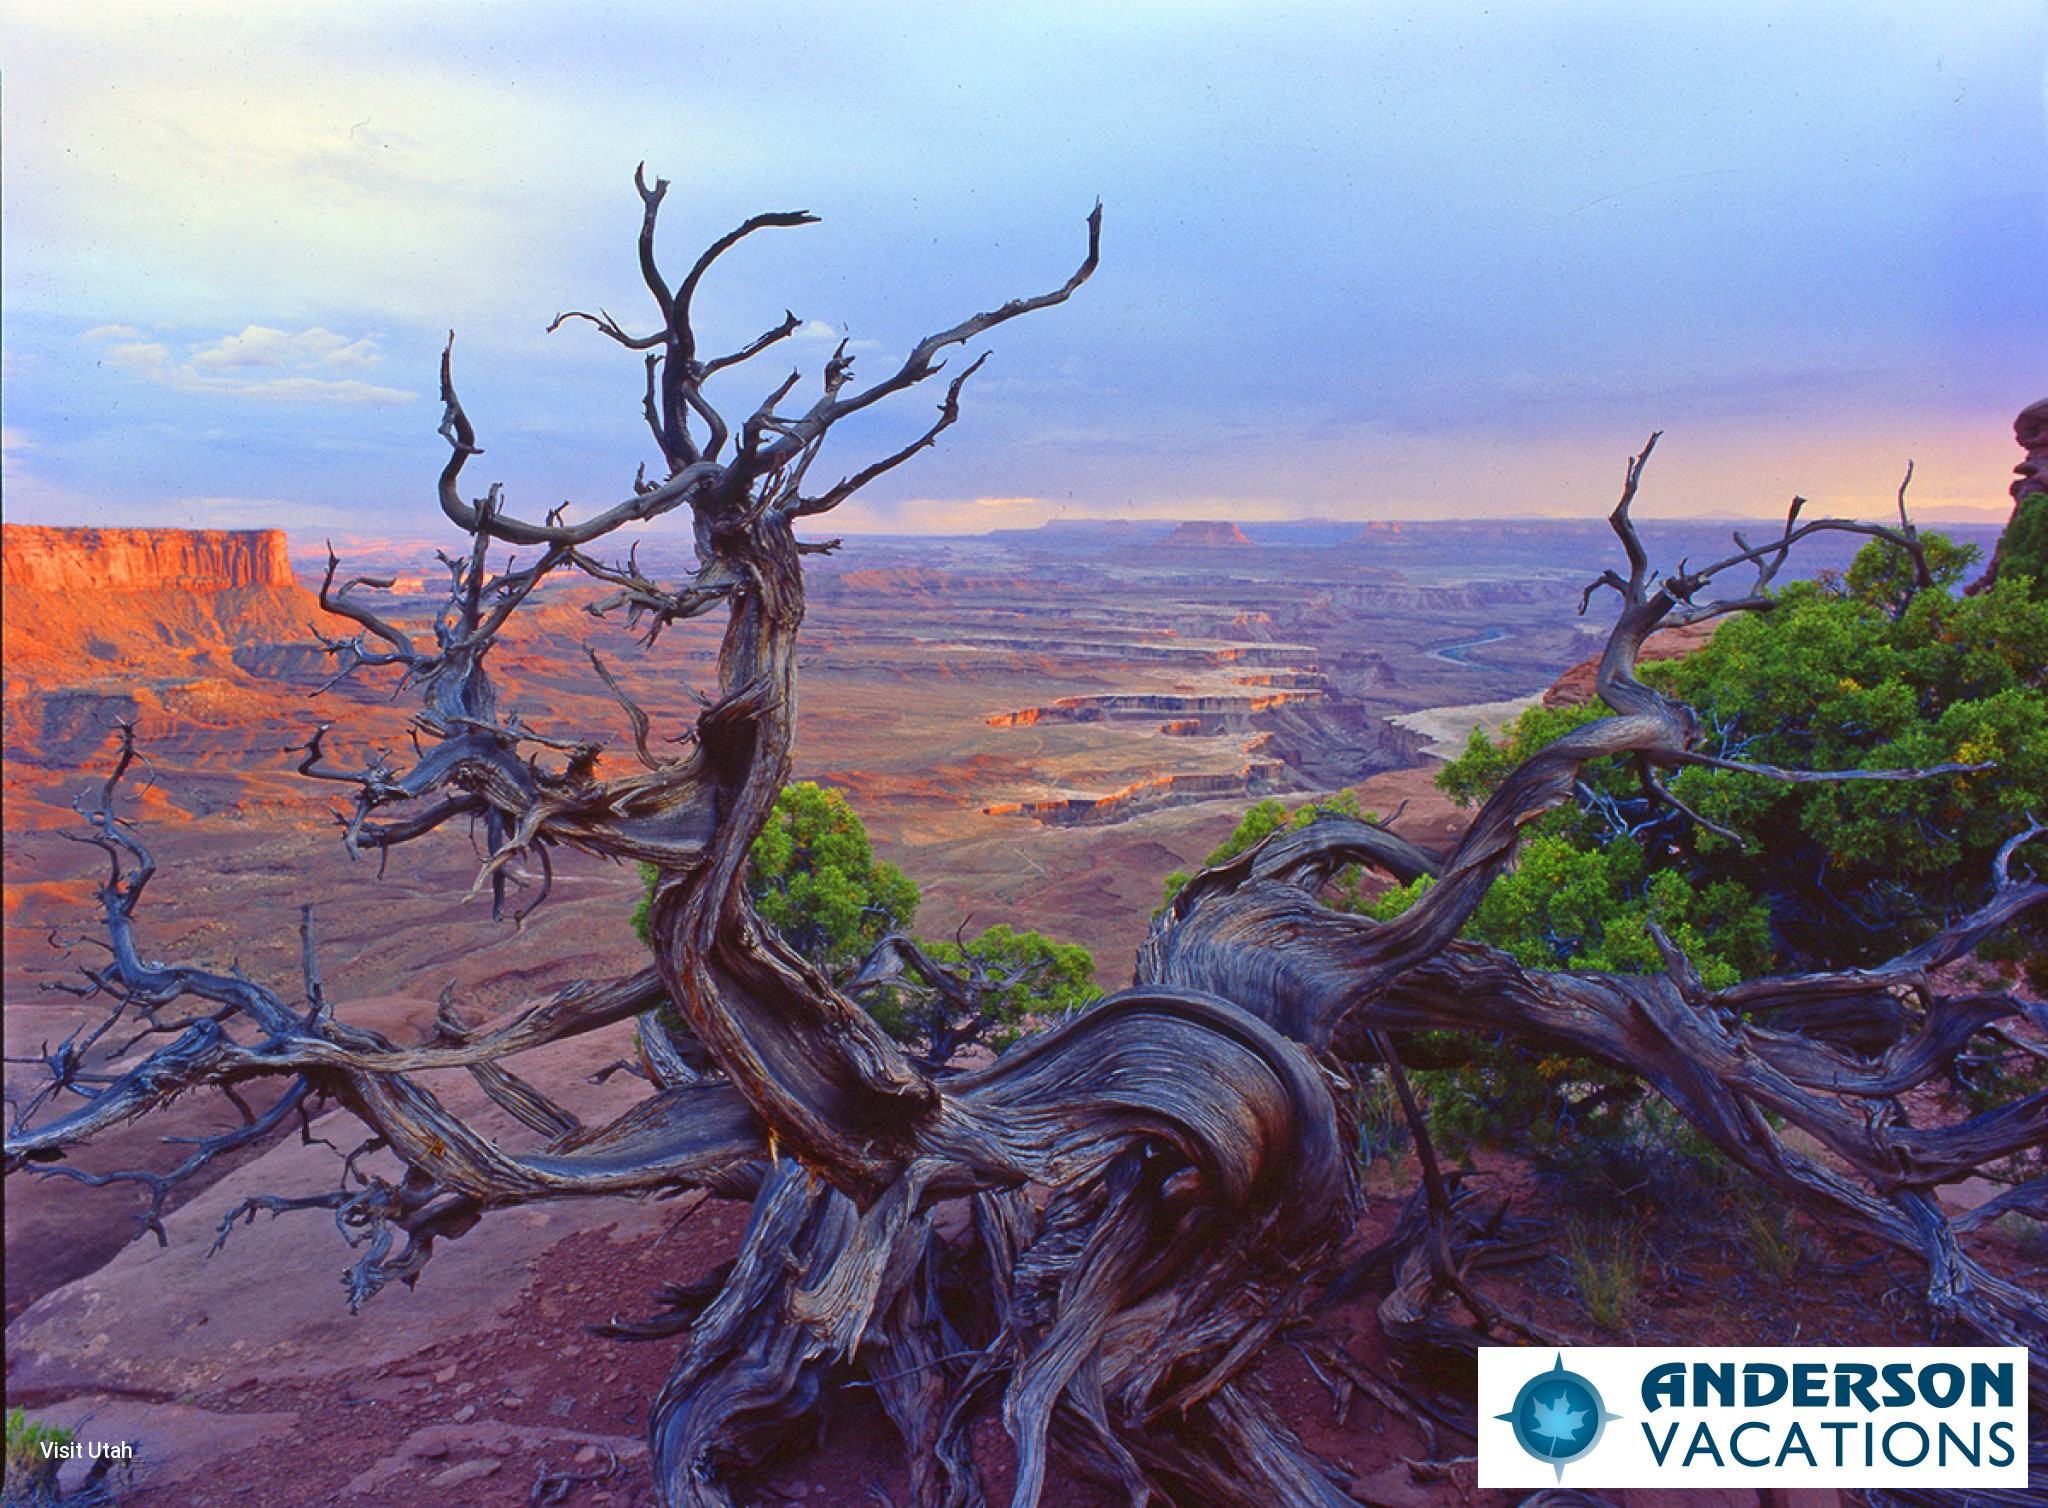 Canyon Lands National Park - Islands In the Sky Overlook